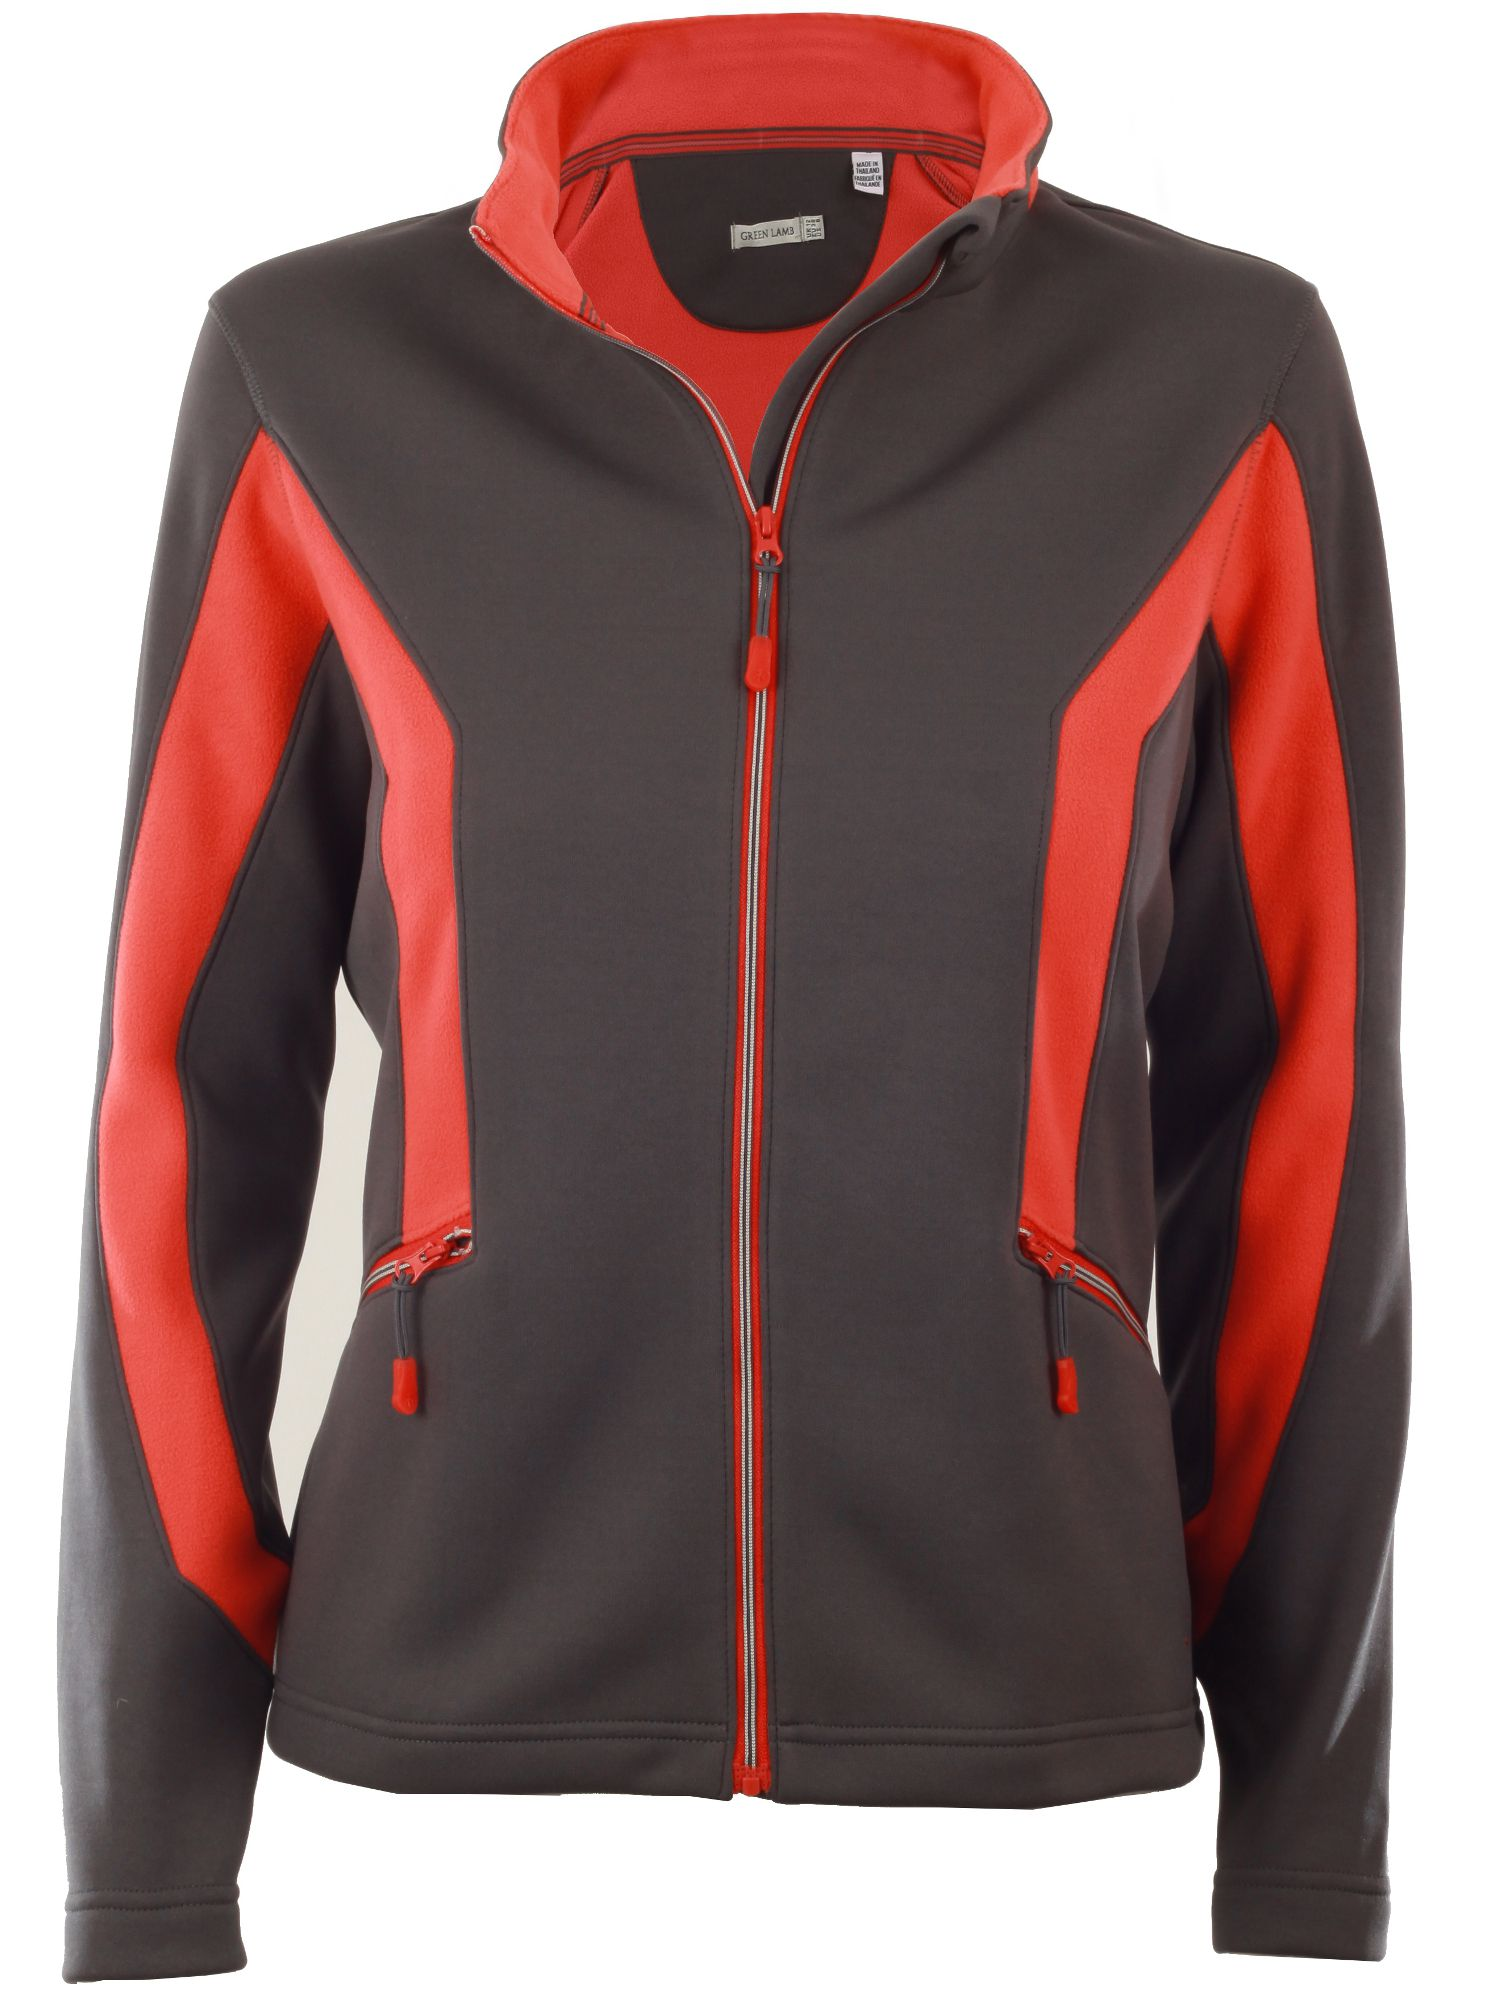 Windbarrier Tech Jacket